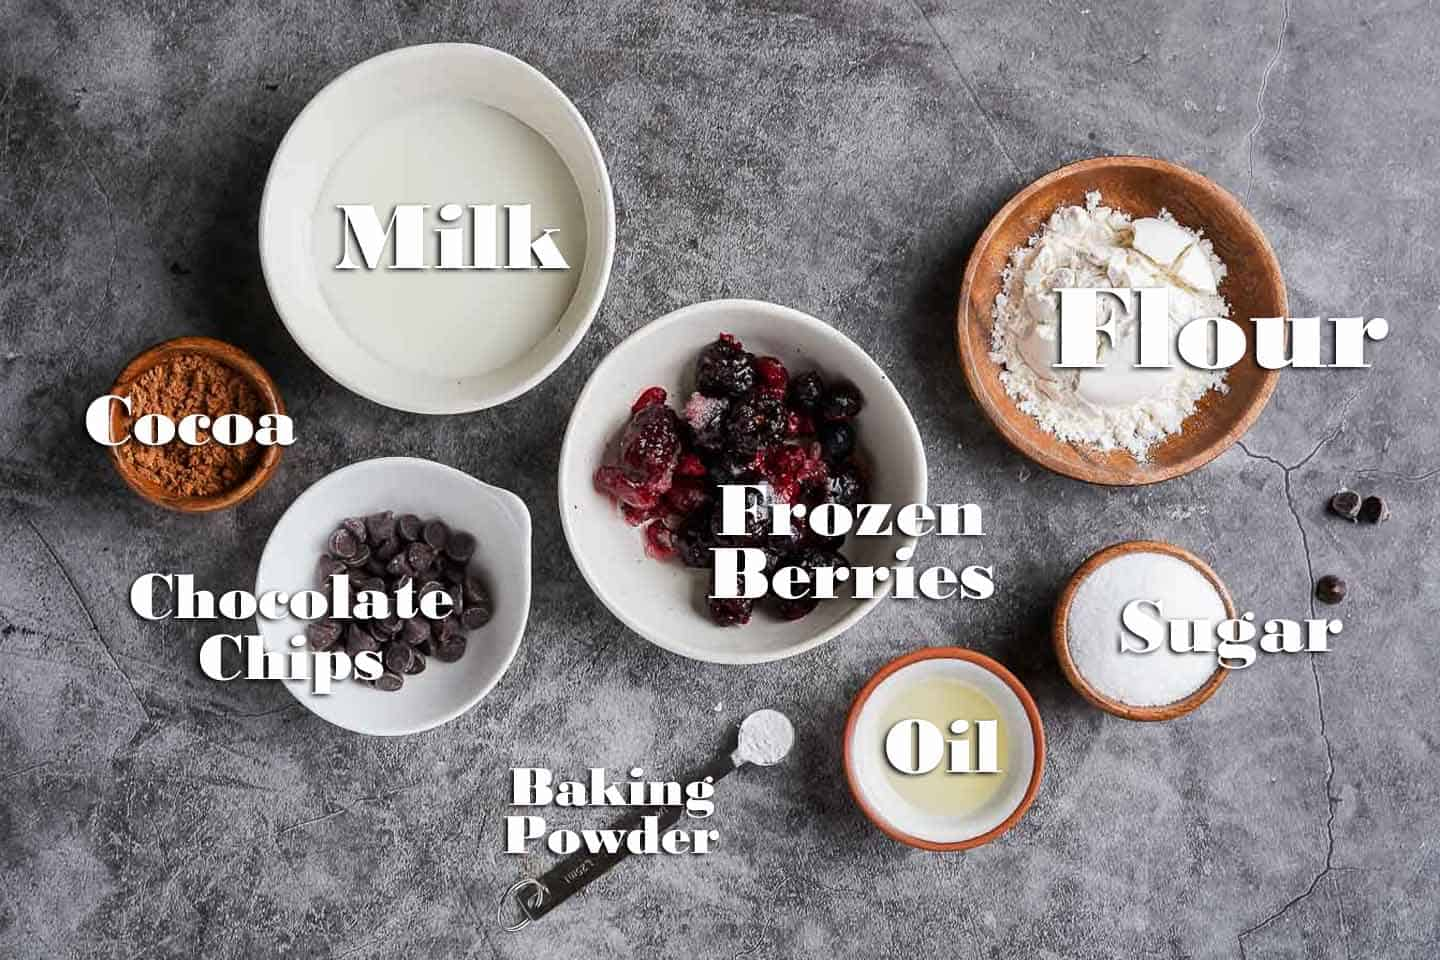 Chocolate Berry Mug Cake Ingredients